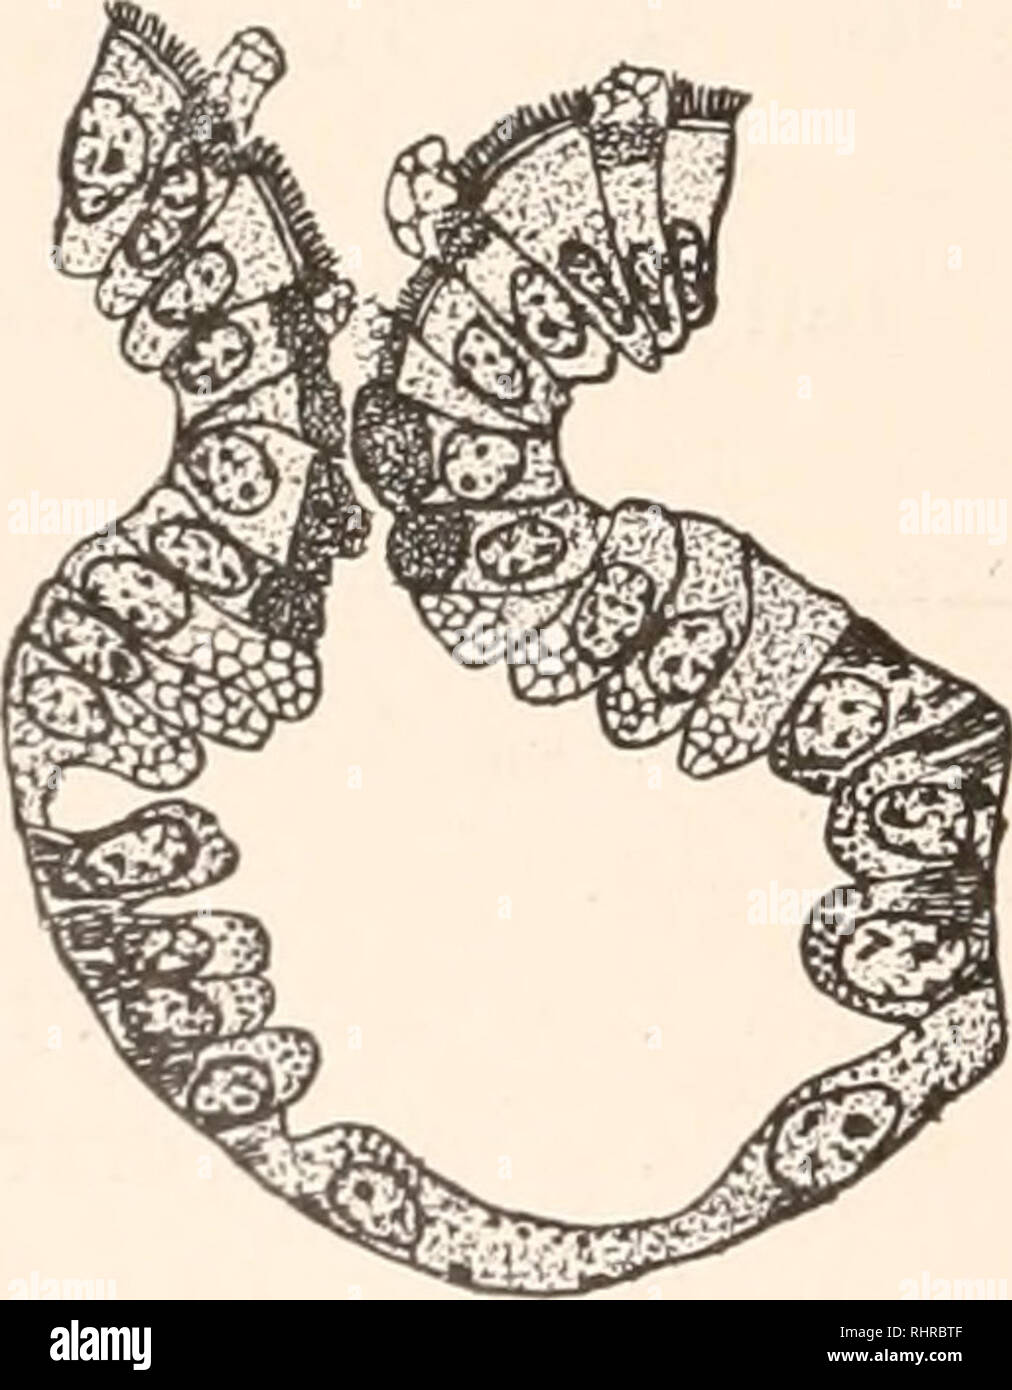 . The Biological bulletin. Biology; Zoology; Biology; Marine Biology. 94 BENSLEY. [VOL. II. distal limb, the latter curving cephalad above the ventral pos- terior margin of the liver, before passing into the midgut. Four regions may now be distinguished ; a very short ante- rior region without glands, provided with a ciliated epithelium, a region with flask-shaped glands and ciliated epithelium, a third region with tubular or saccular glands and a mucige- nous epithelium, and finally, at the posterior end, a region in which no glands at all are to be discerned. The second and third regions gra - Stock Image